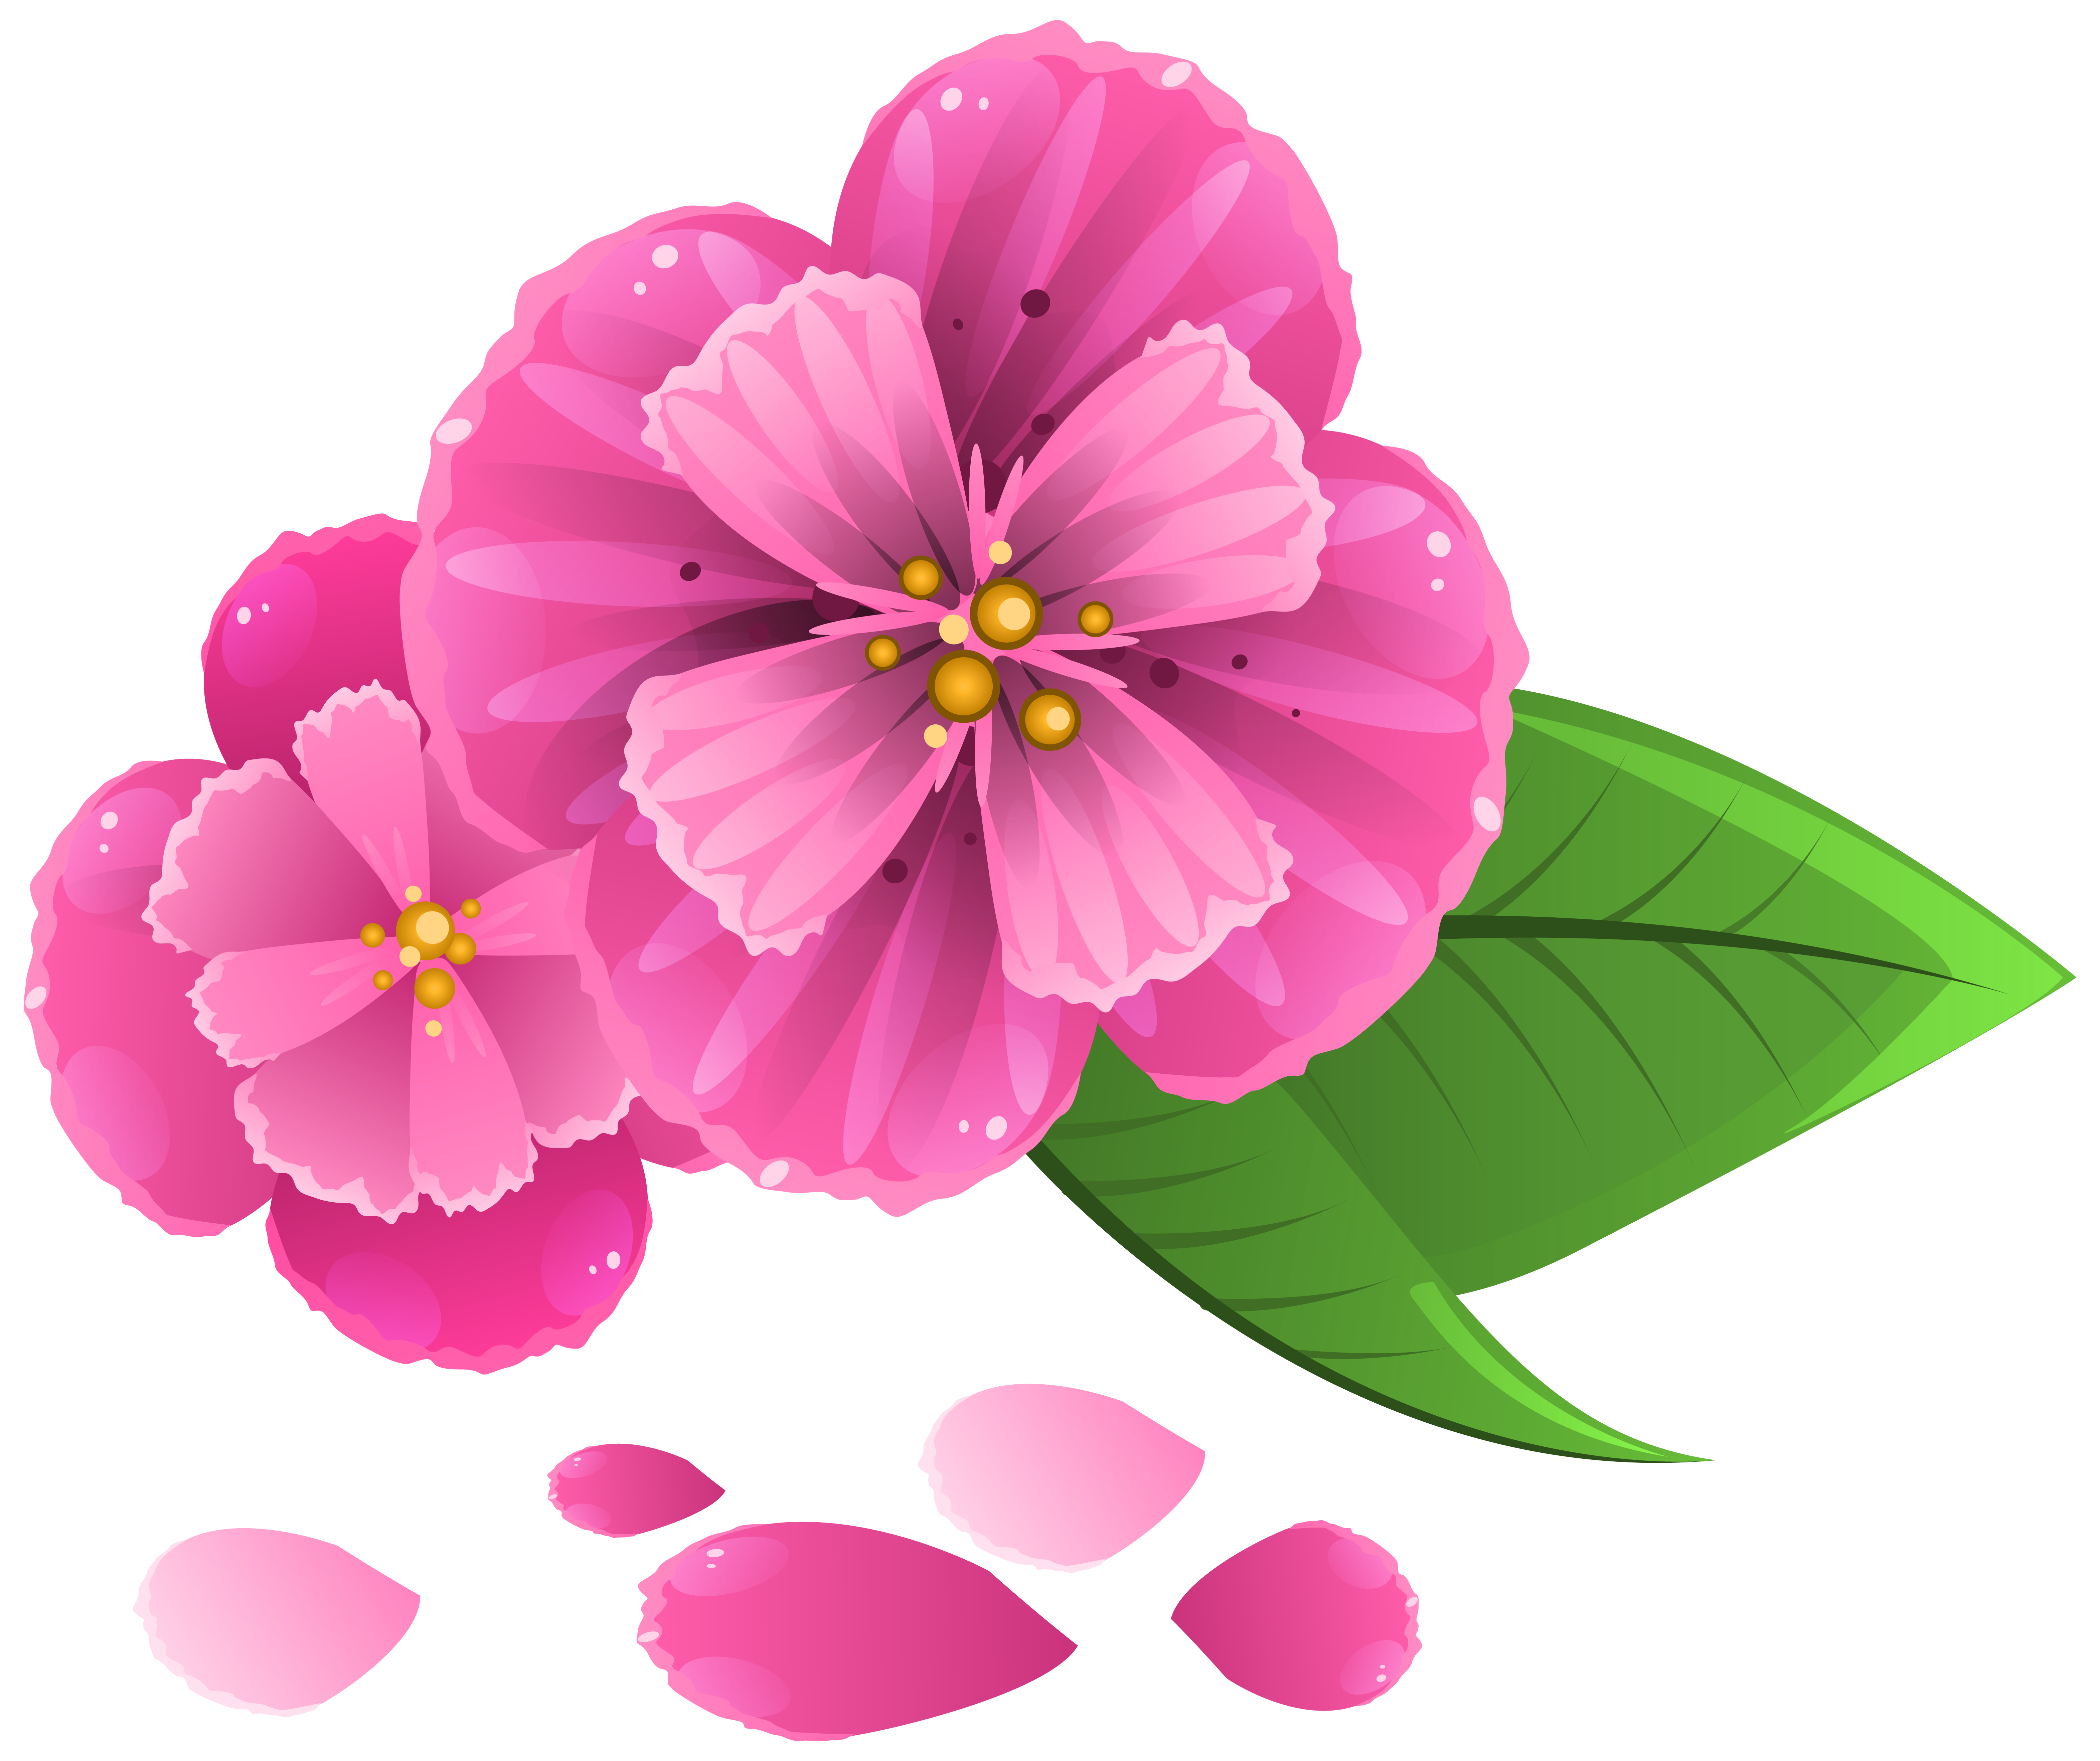 Pink flower png. With petals clipart image